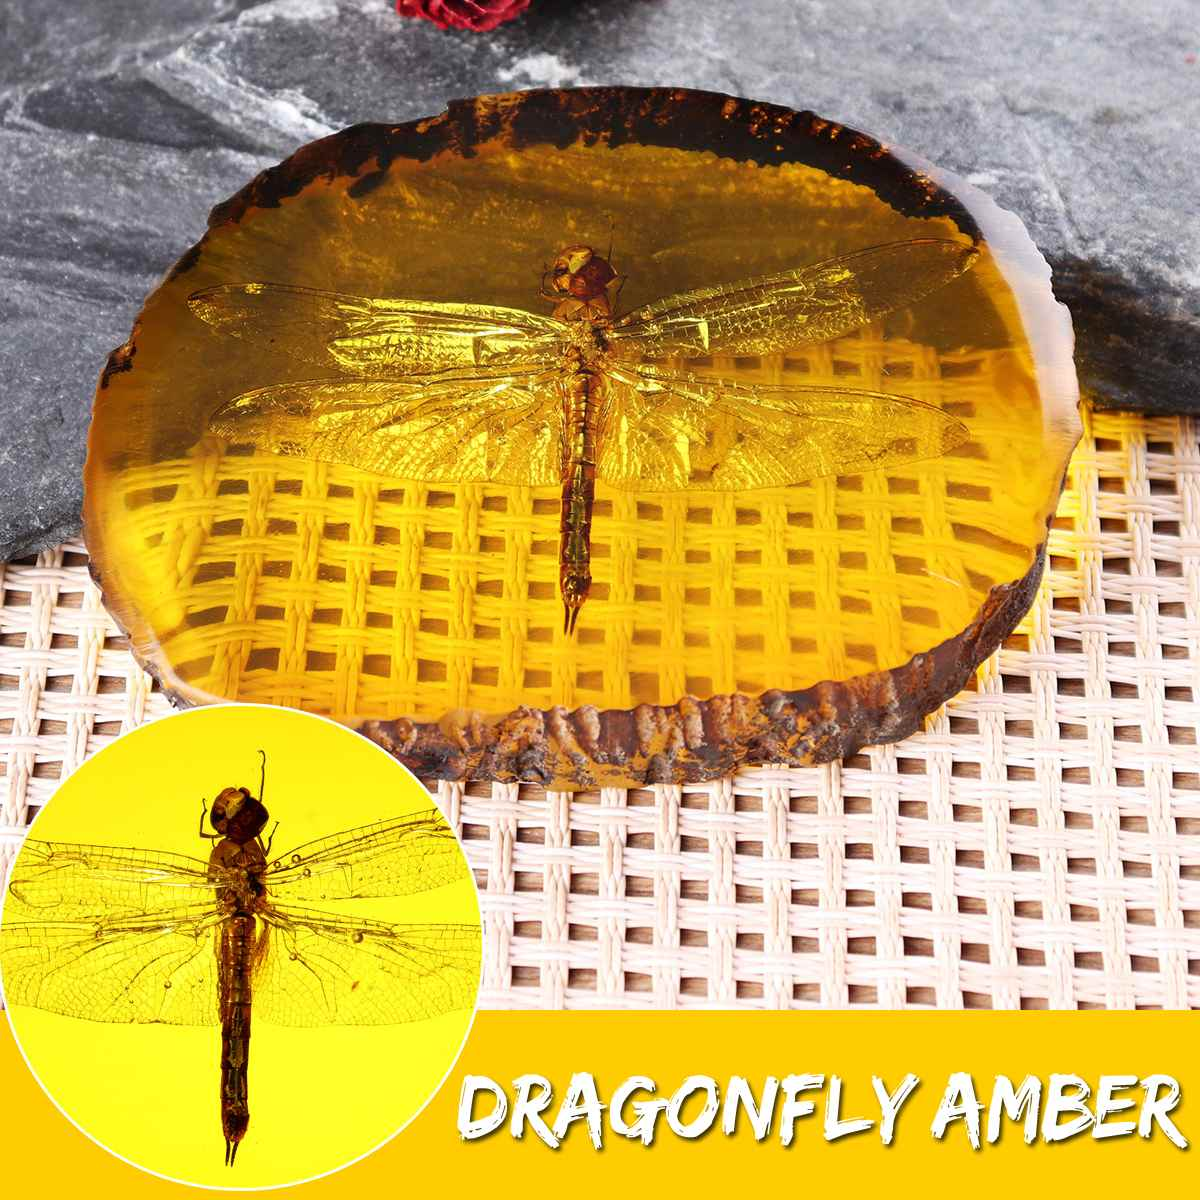 Natural Amber Dragonfly Insect Manual Polishing Decorations DIY Ornament Craft Gift Home Decoration